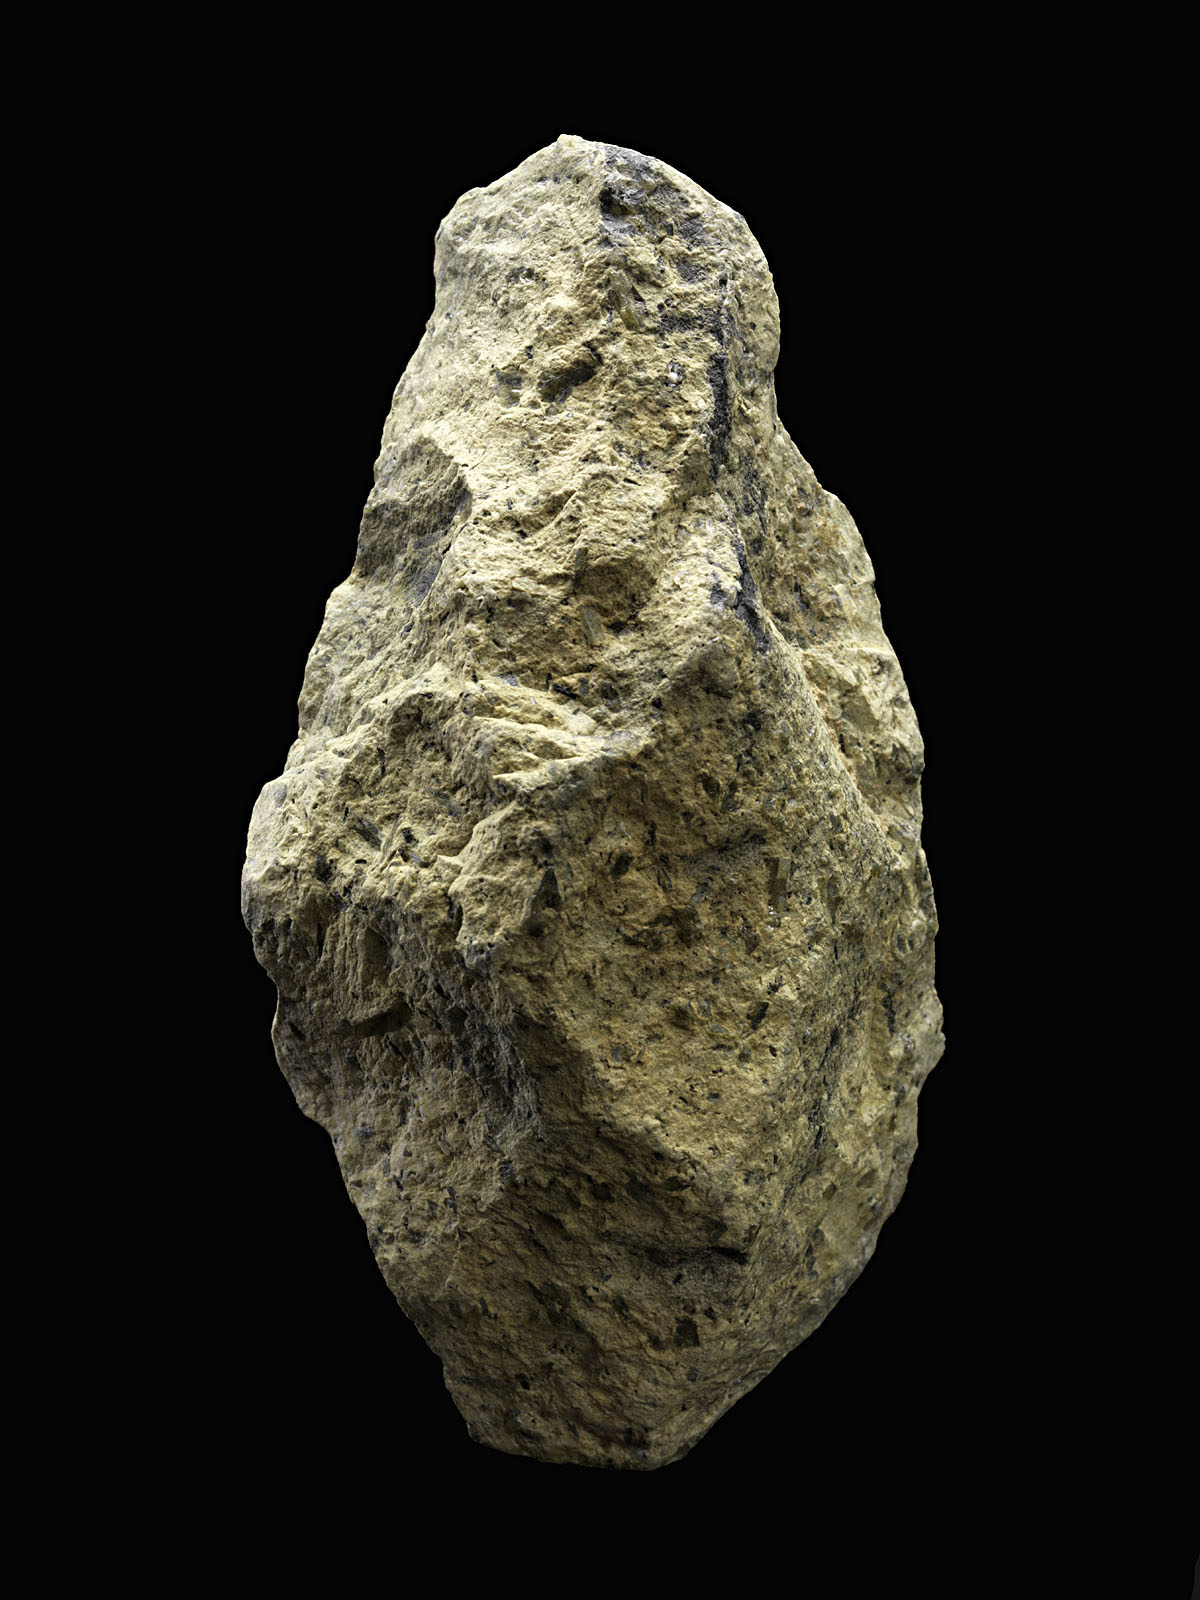 A handaxe from Olorgesailie (handaxe is ~14cm tall). Image courtesy of James Di Loreto and Donald H. Hurlbert, Smithsonian Institution.